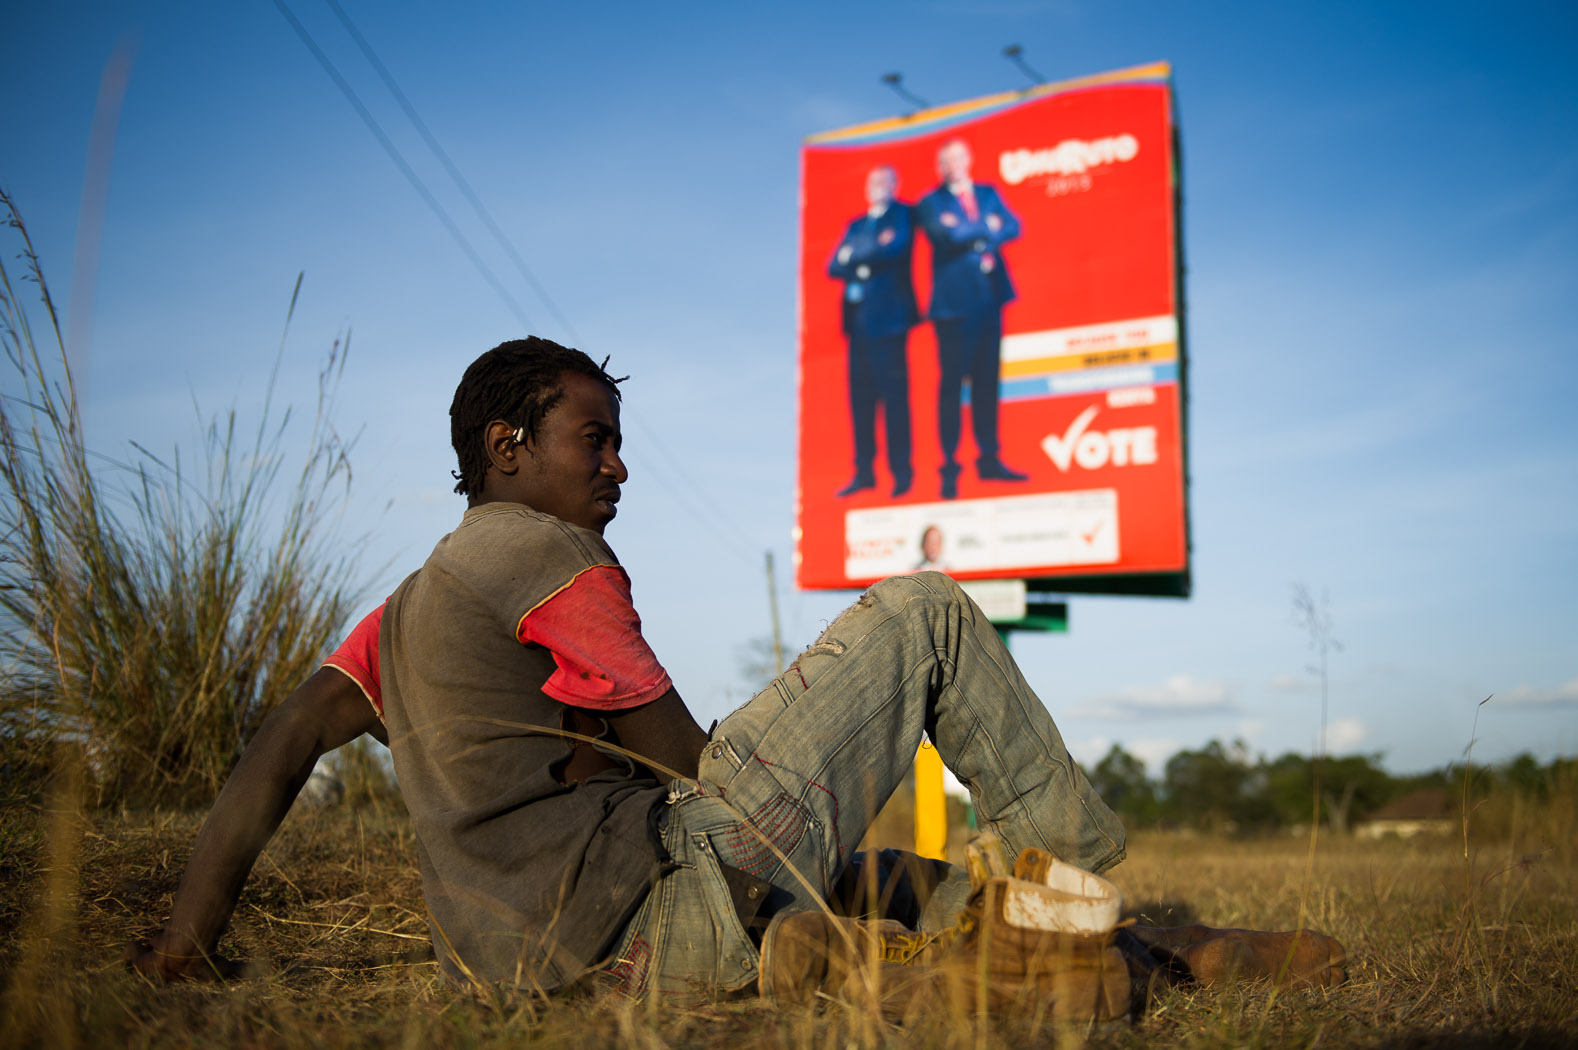 The Supreme Court ruled that Uhuru Kenyatta's victory stood, and on April 9th he was inaugurated as President of Kenya. He is still indicted by the International Criminal Court, but has promised wide-spread change across Kenya.